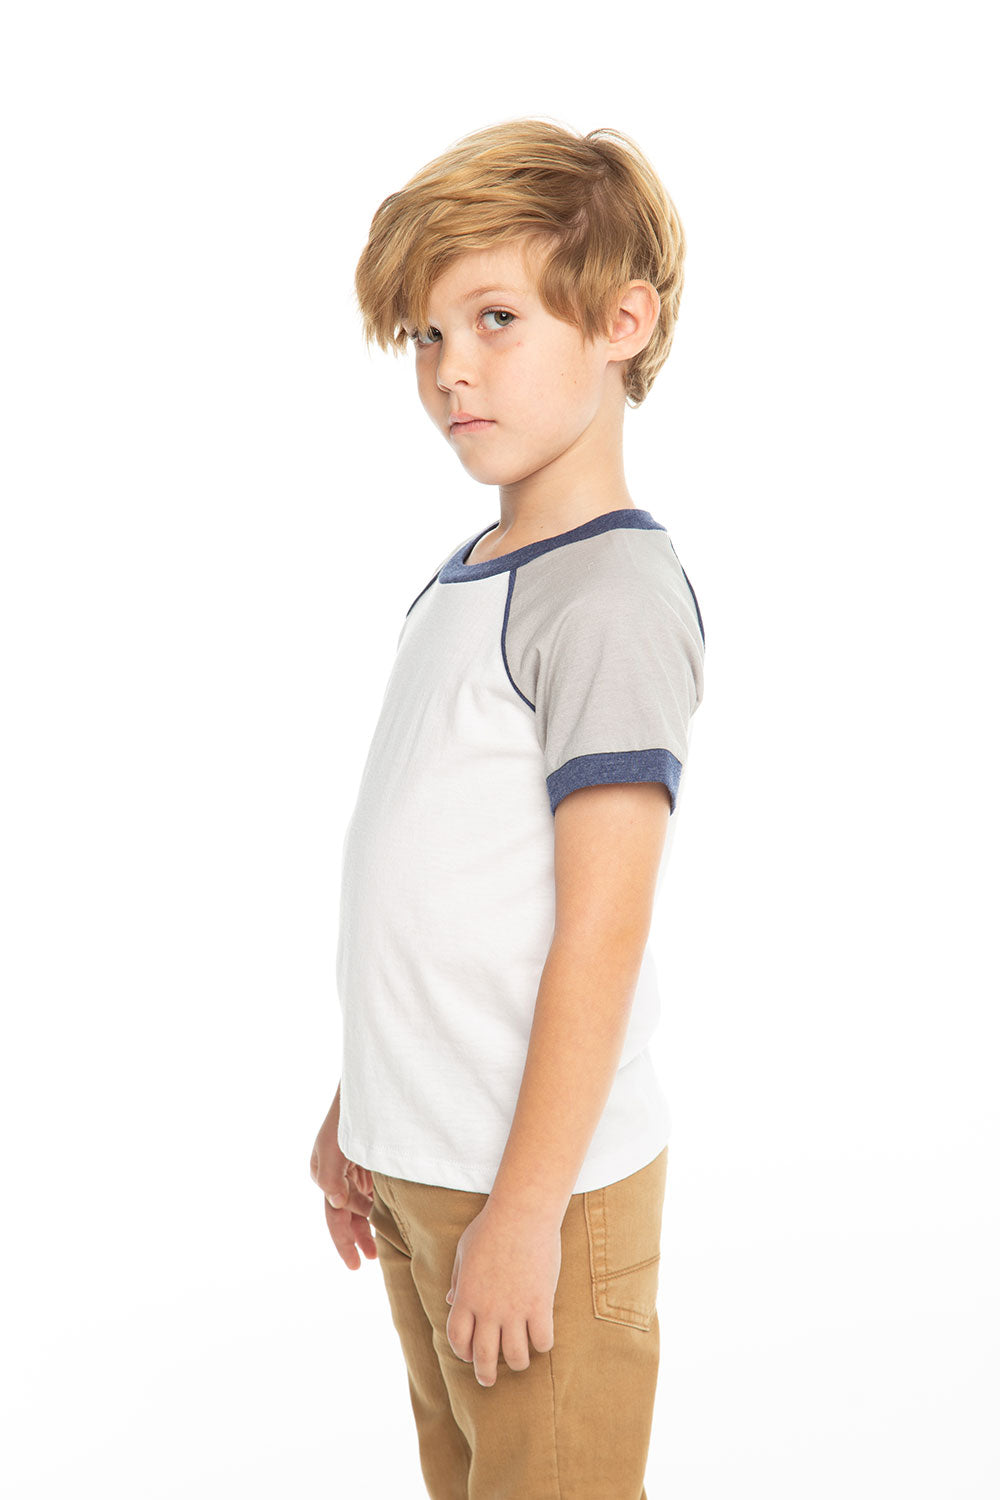 Boys Blocked Jersey Classic S/S Raglan Tee BOYS chaserbrand4.myshopify.com